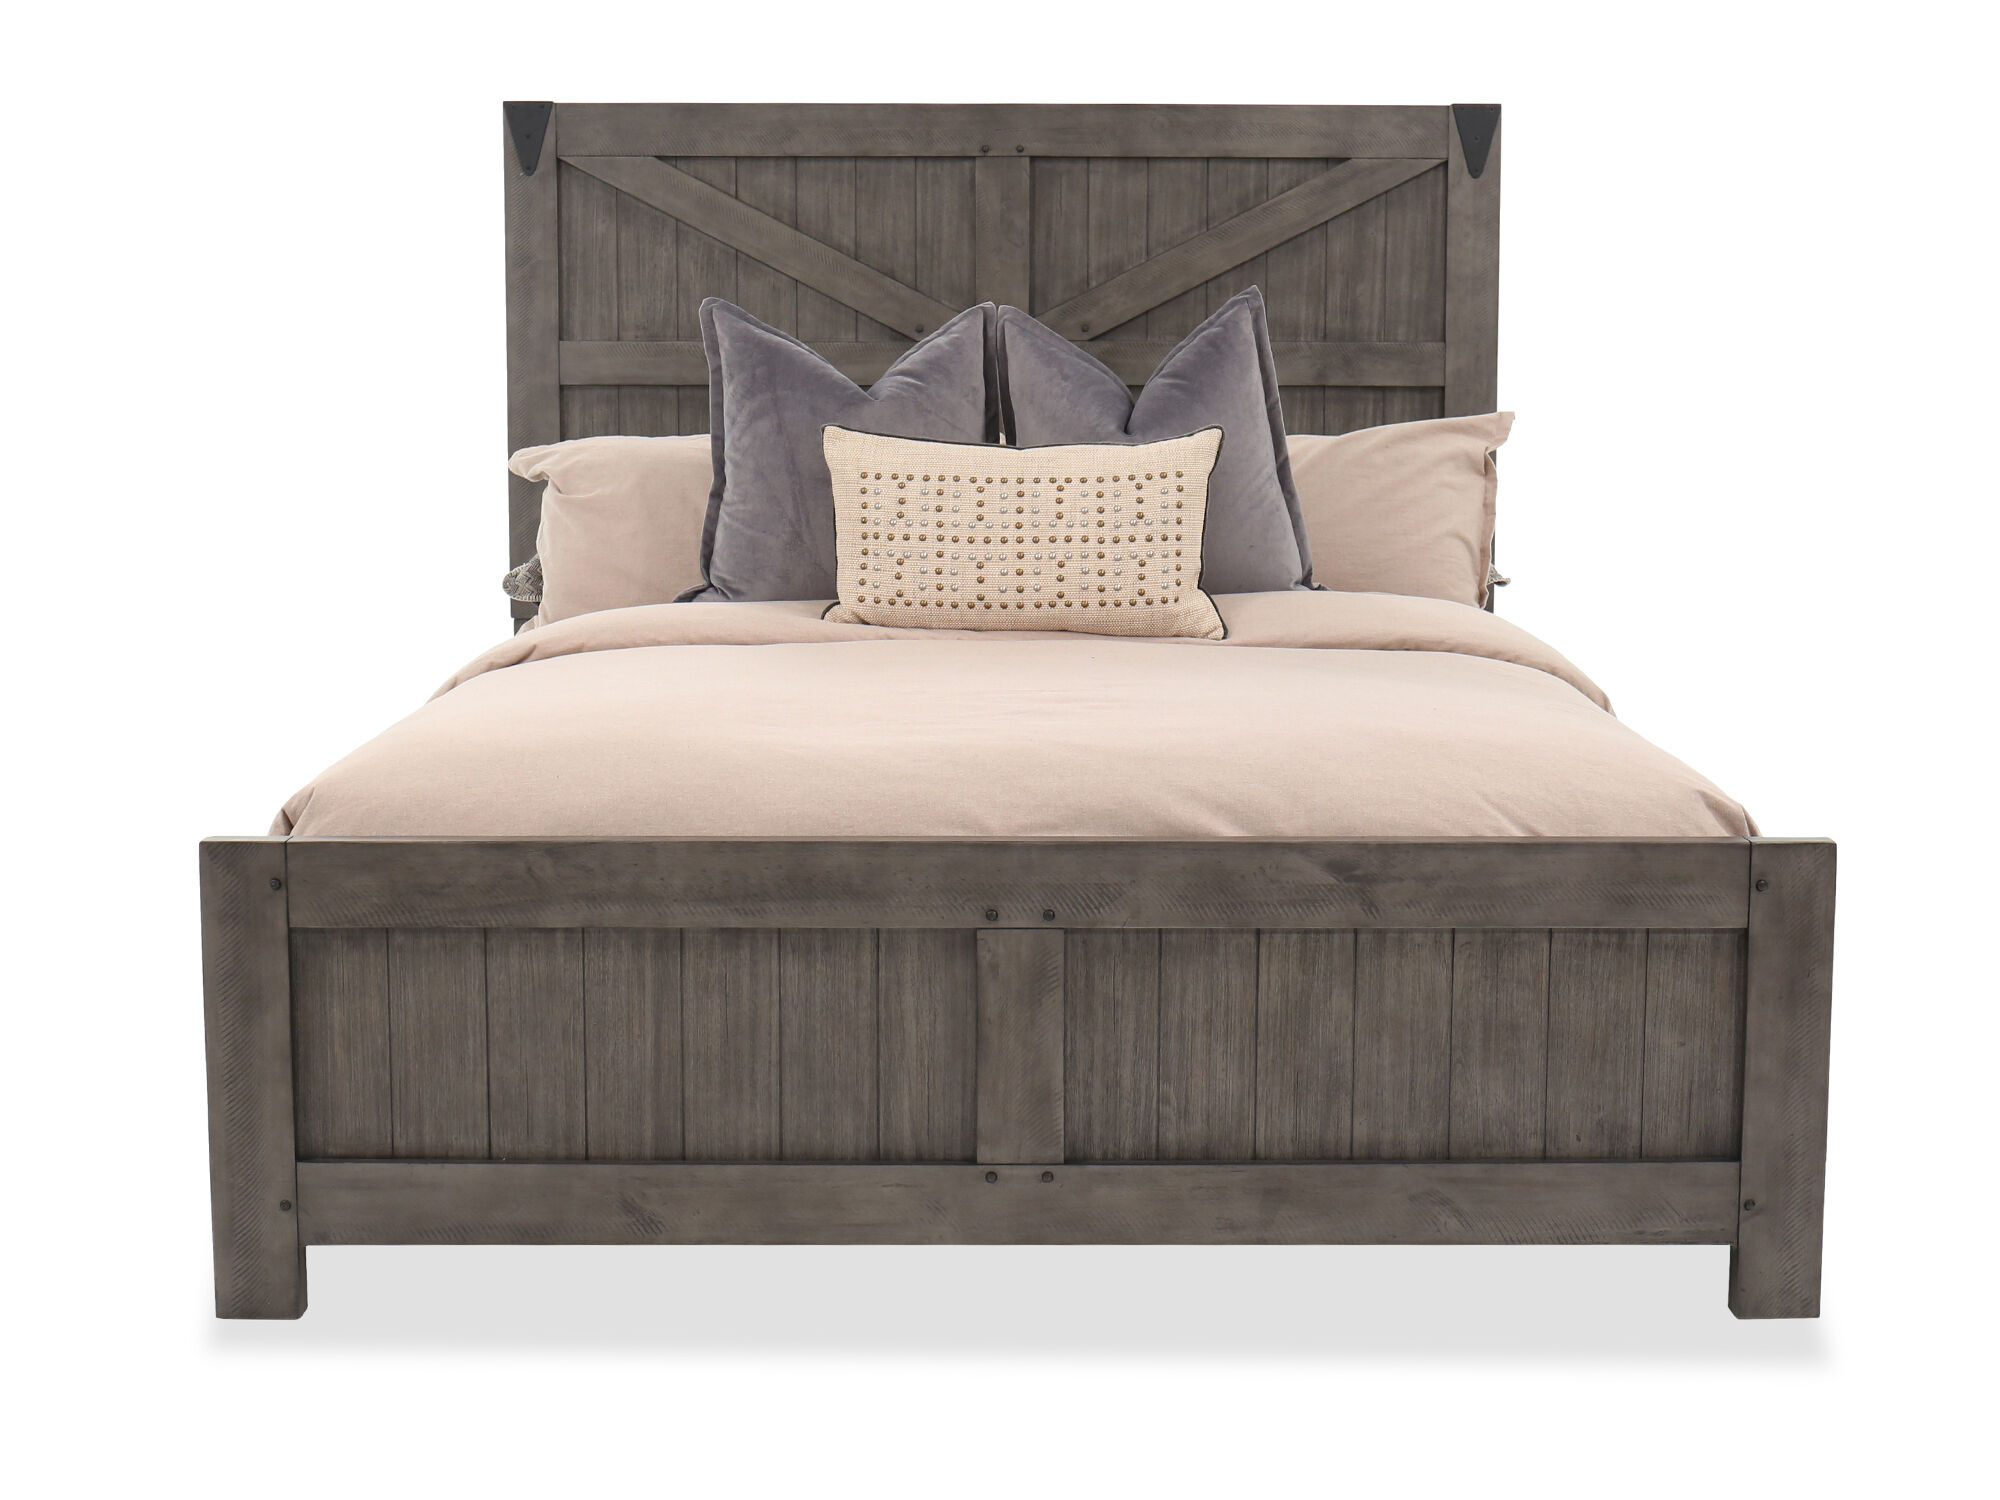 Rustic Farmhouse Panel Bed In French Gray Mathis